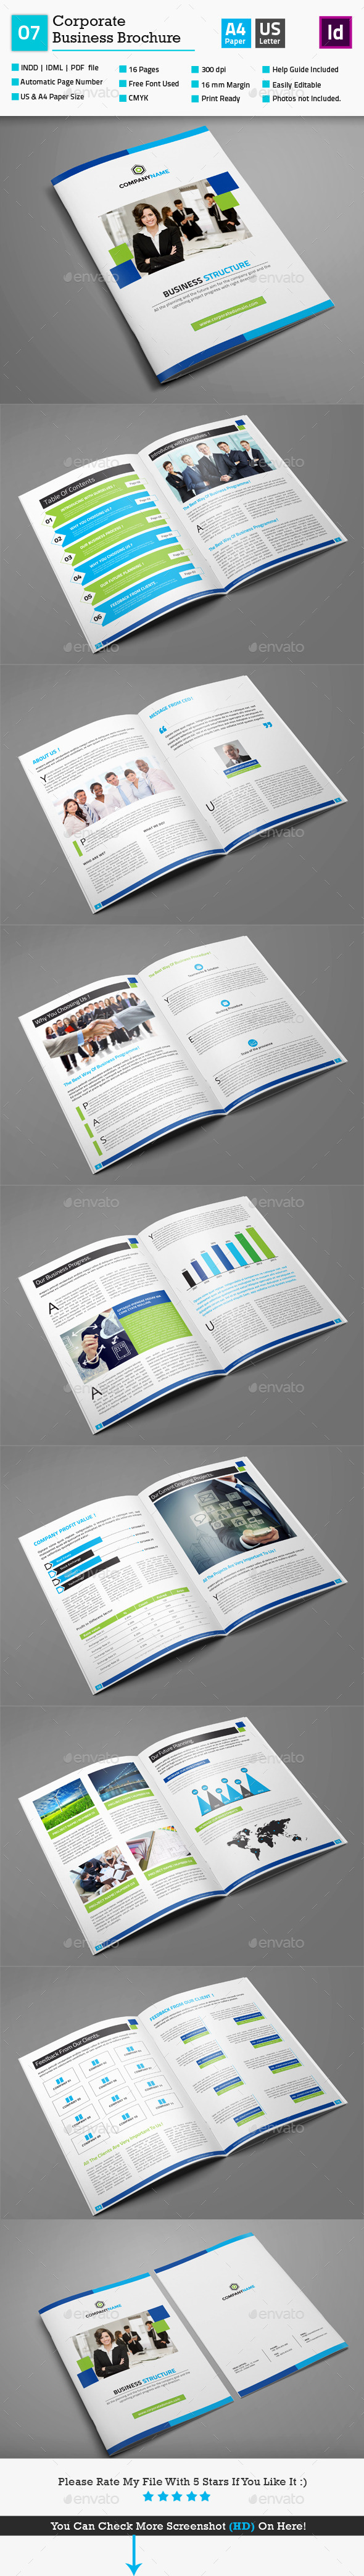 GraphicRiver Corporate Business Brochure 07 10197137